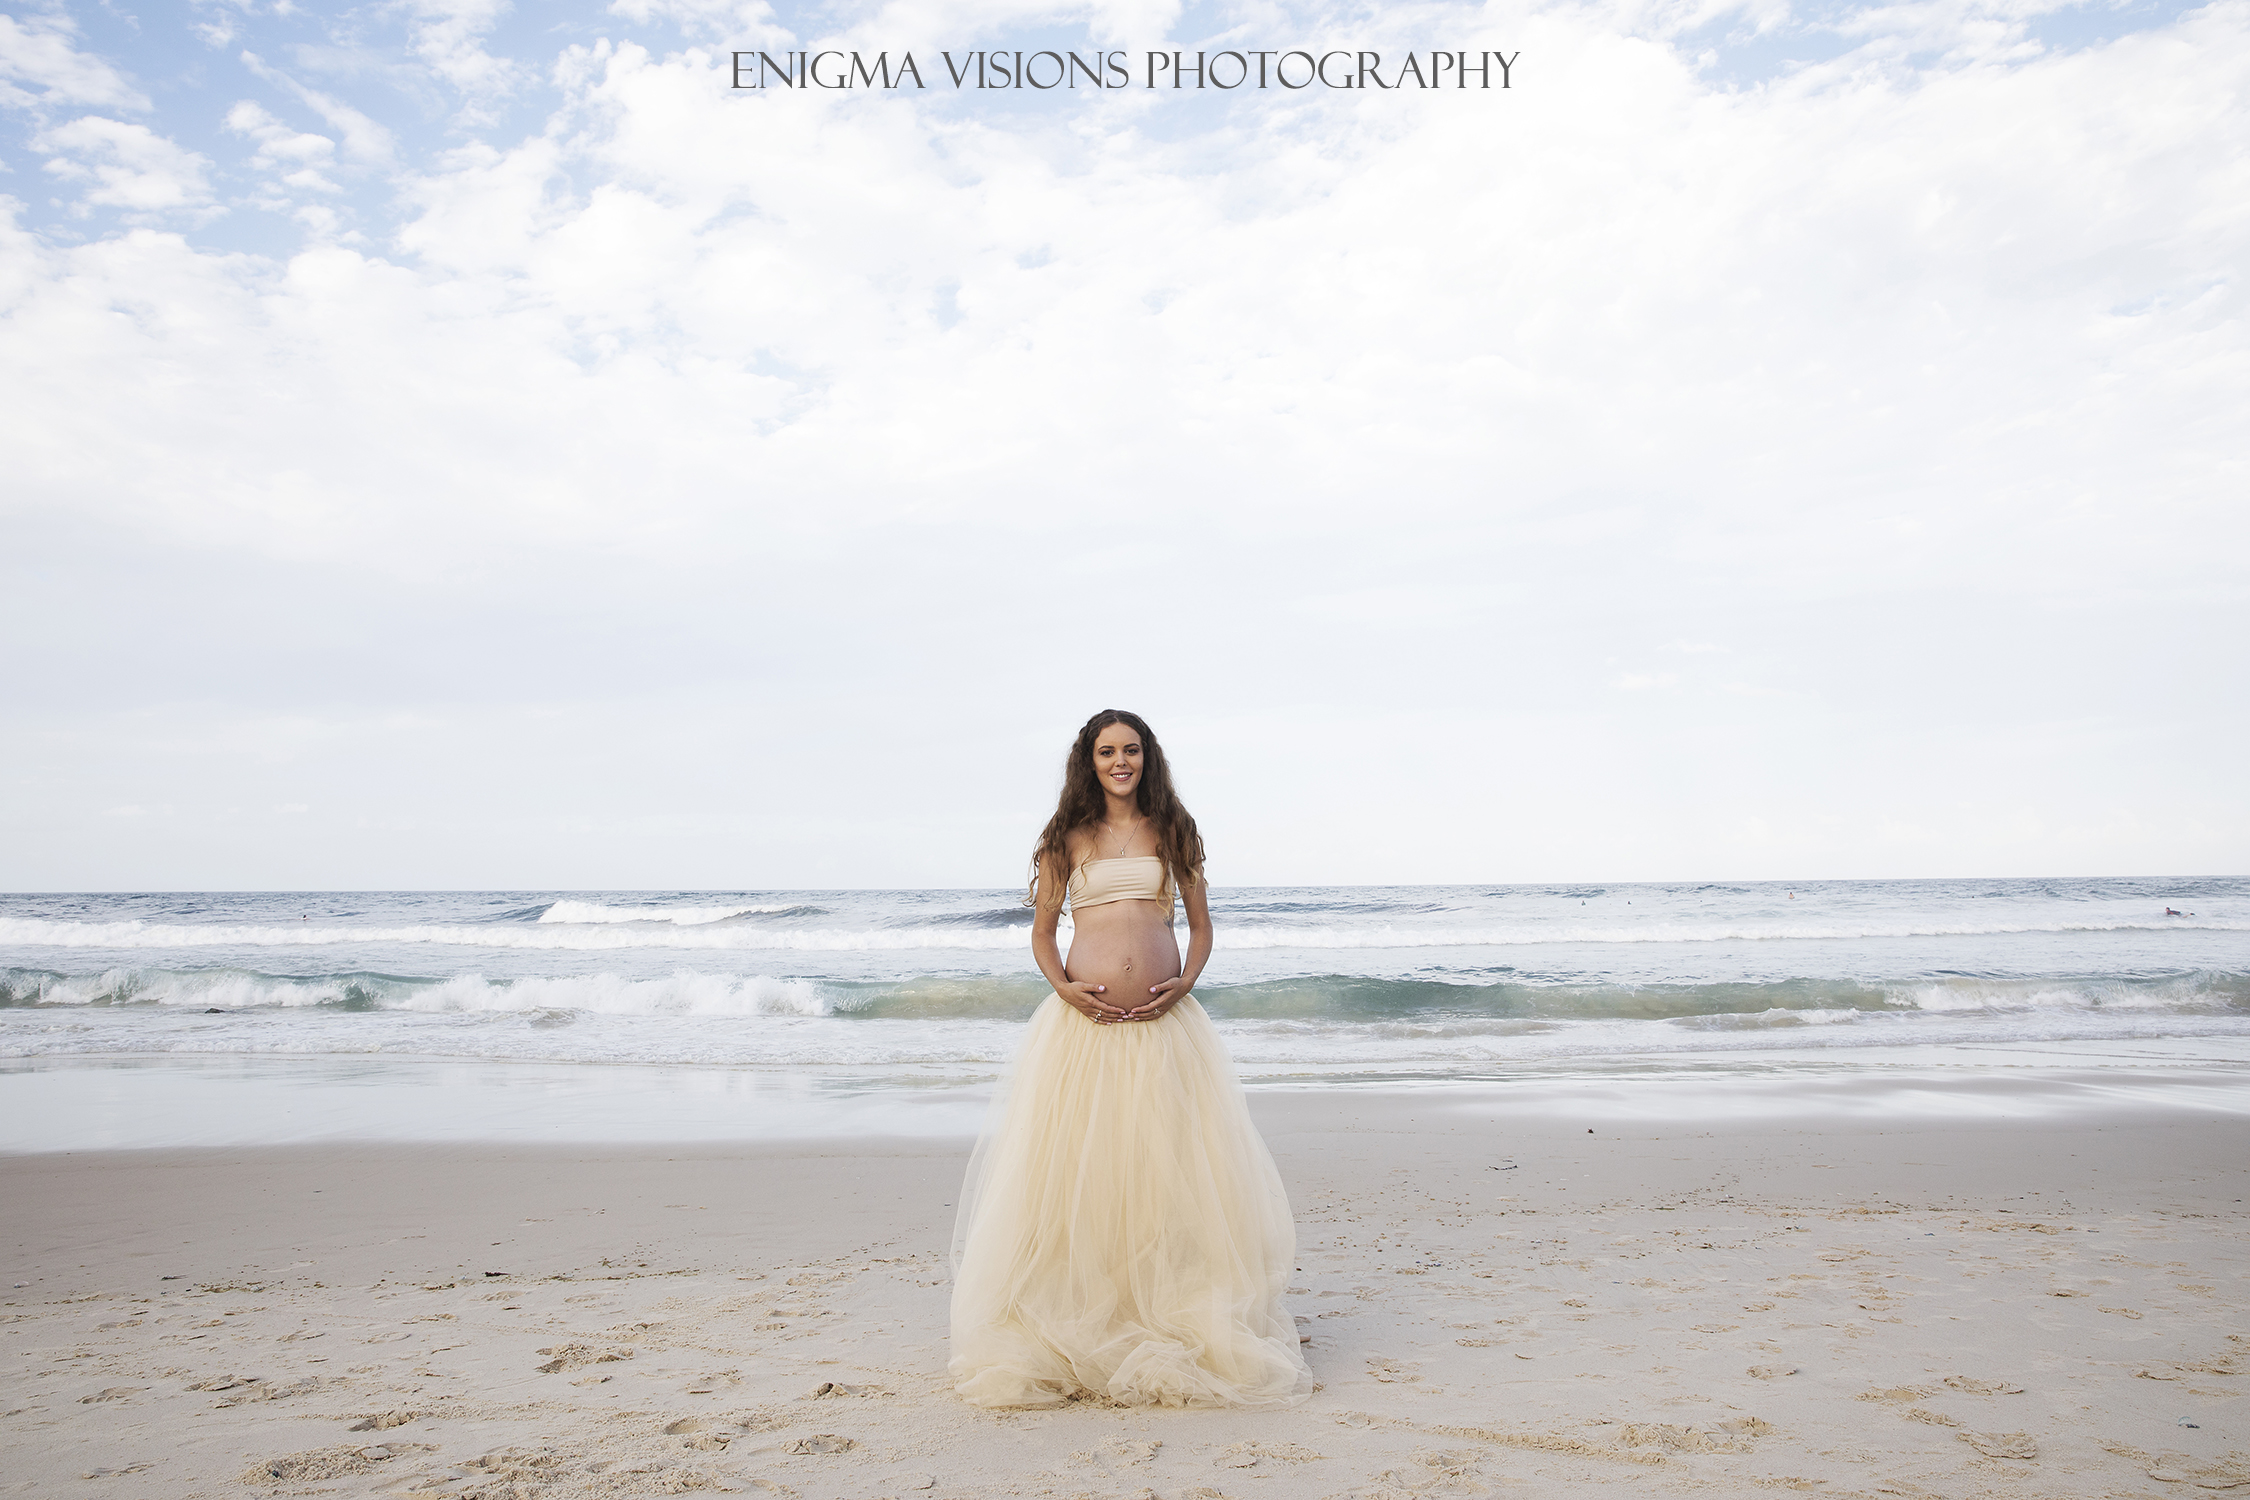 Enigma_Visions_Photography_Maternity_Mahlea021.jpg